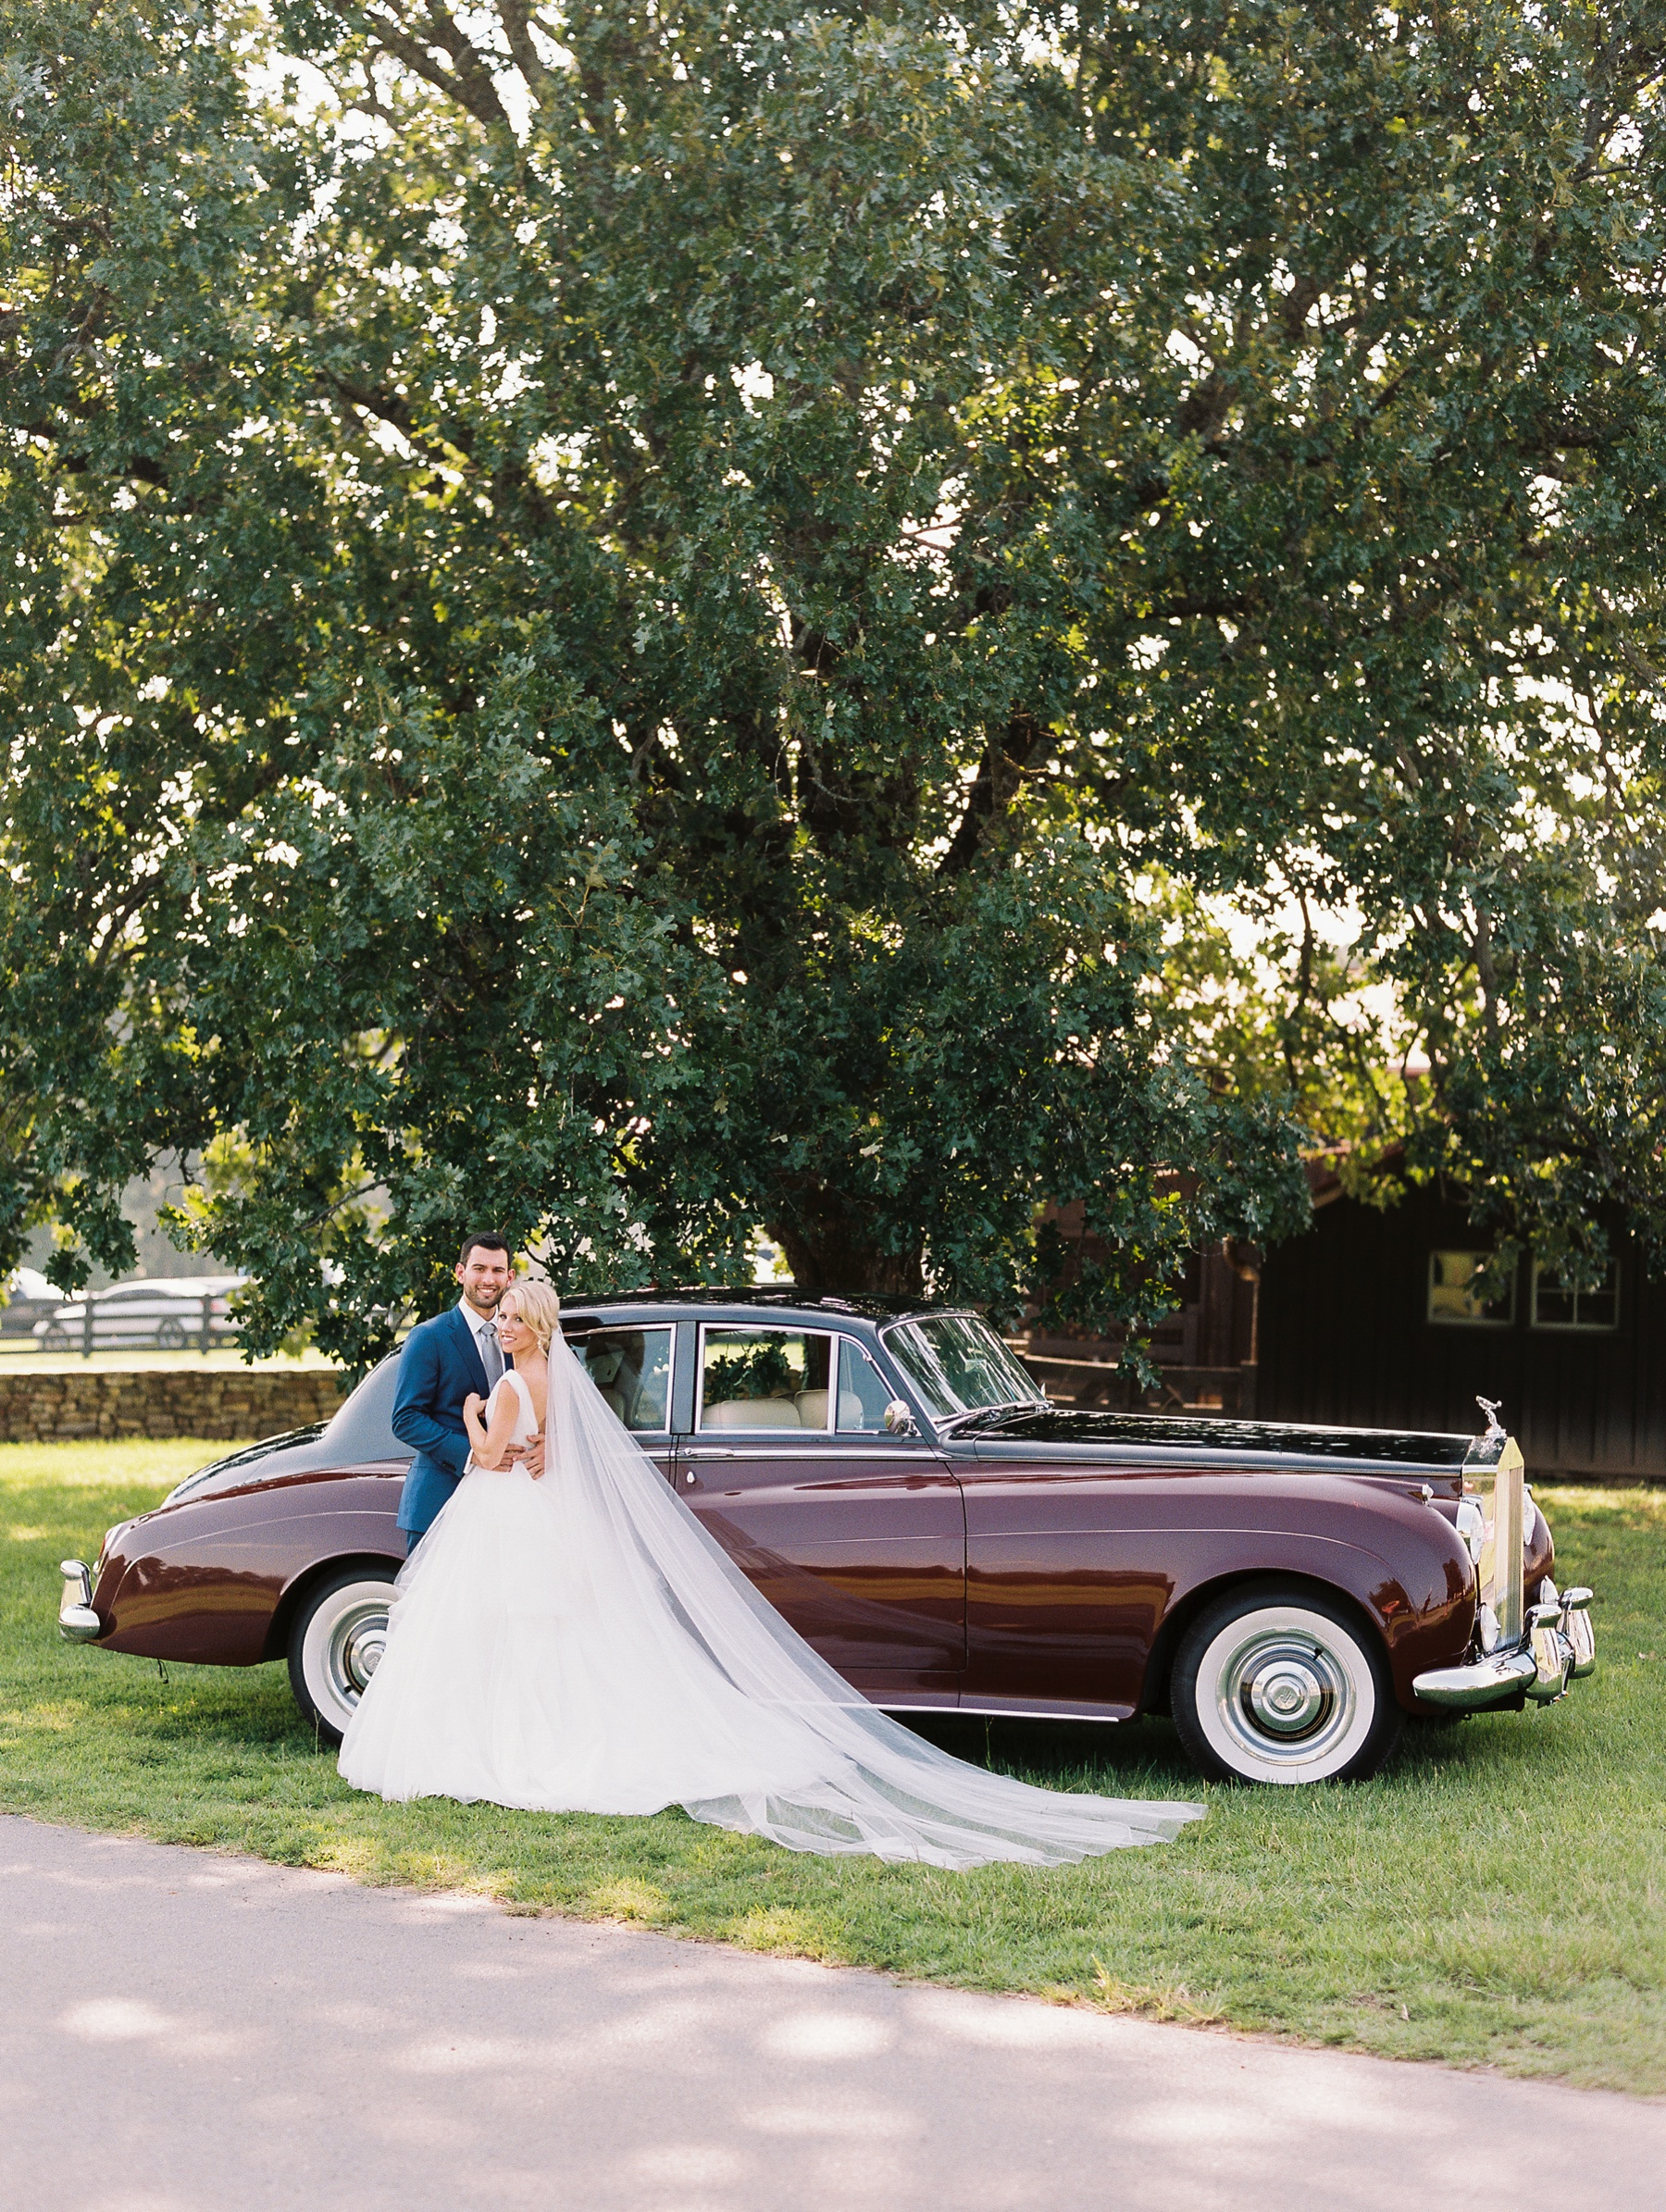 CMT Music City Jessica Mack and Andreas Plackis Wedding_1505.jpg